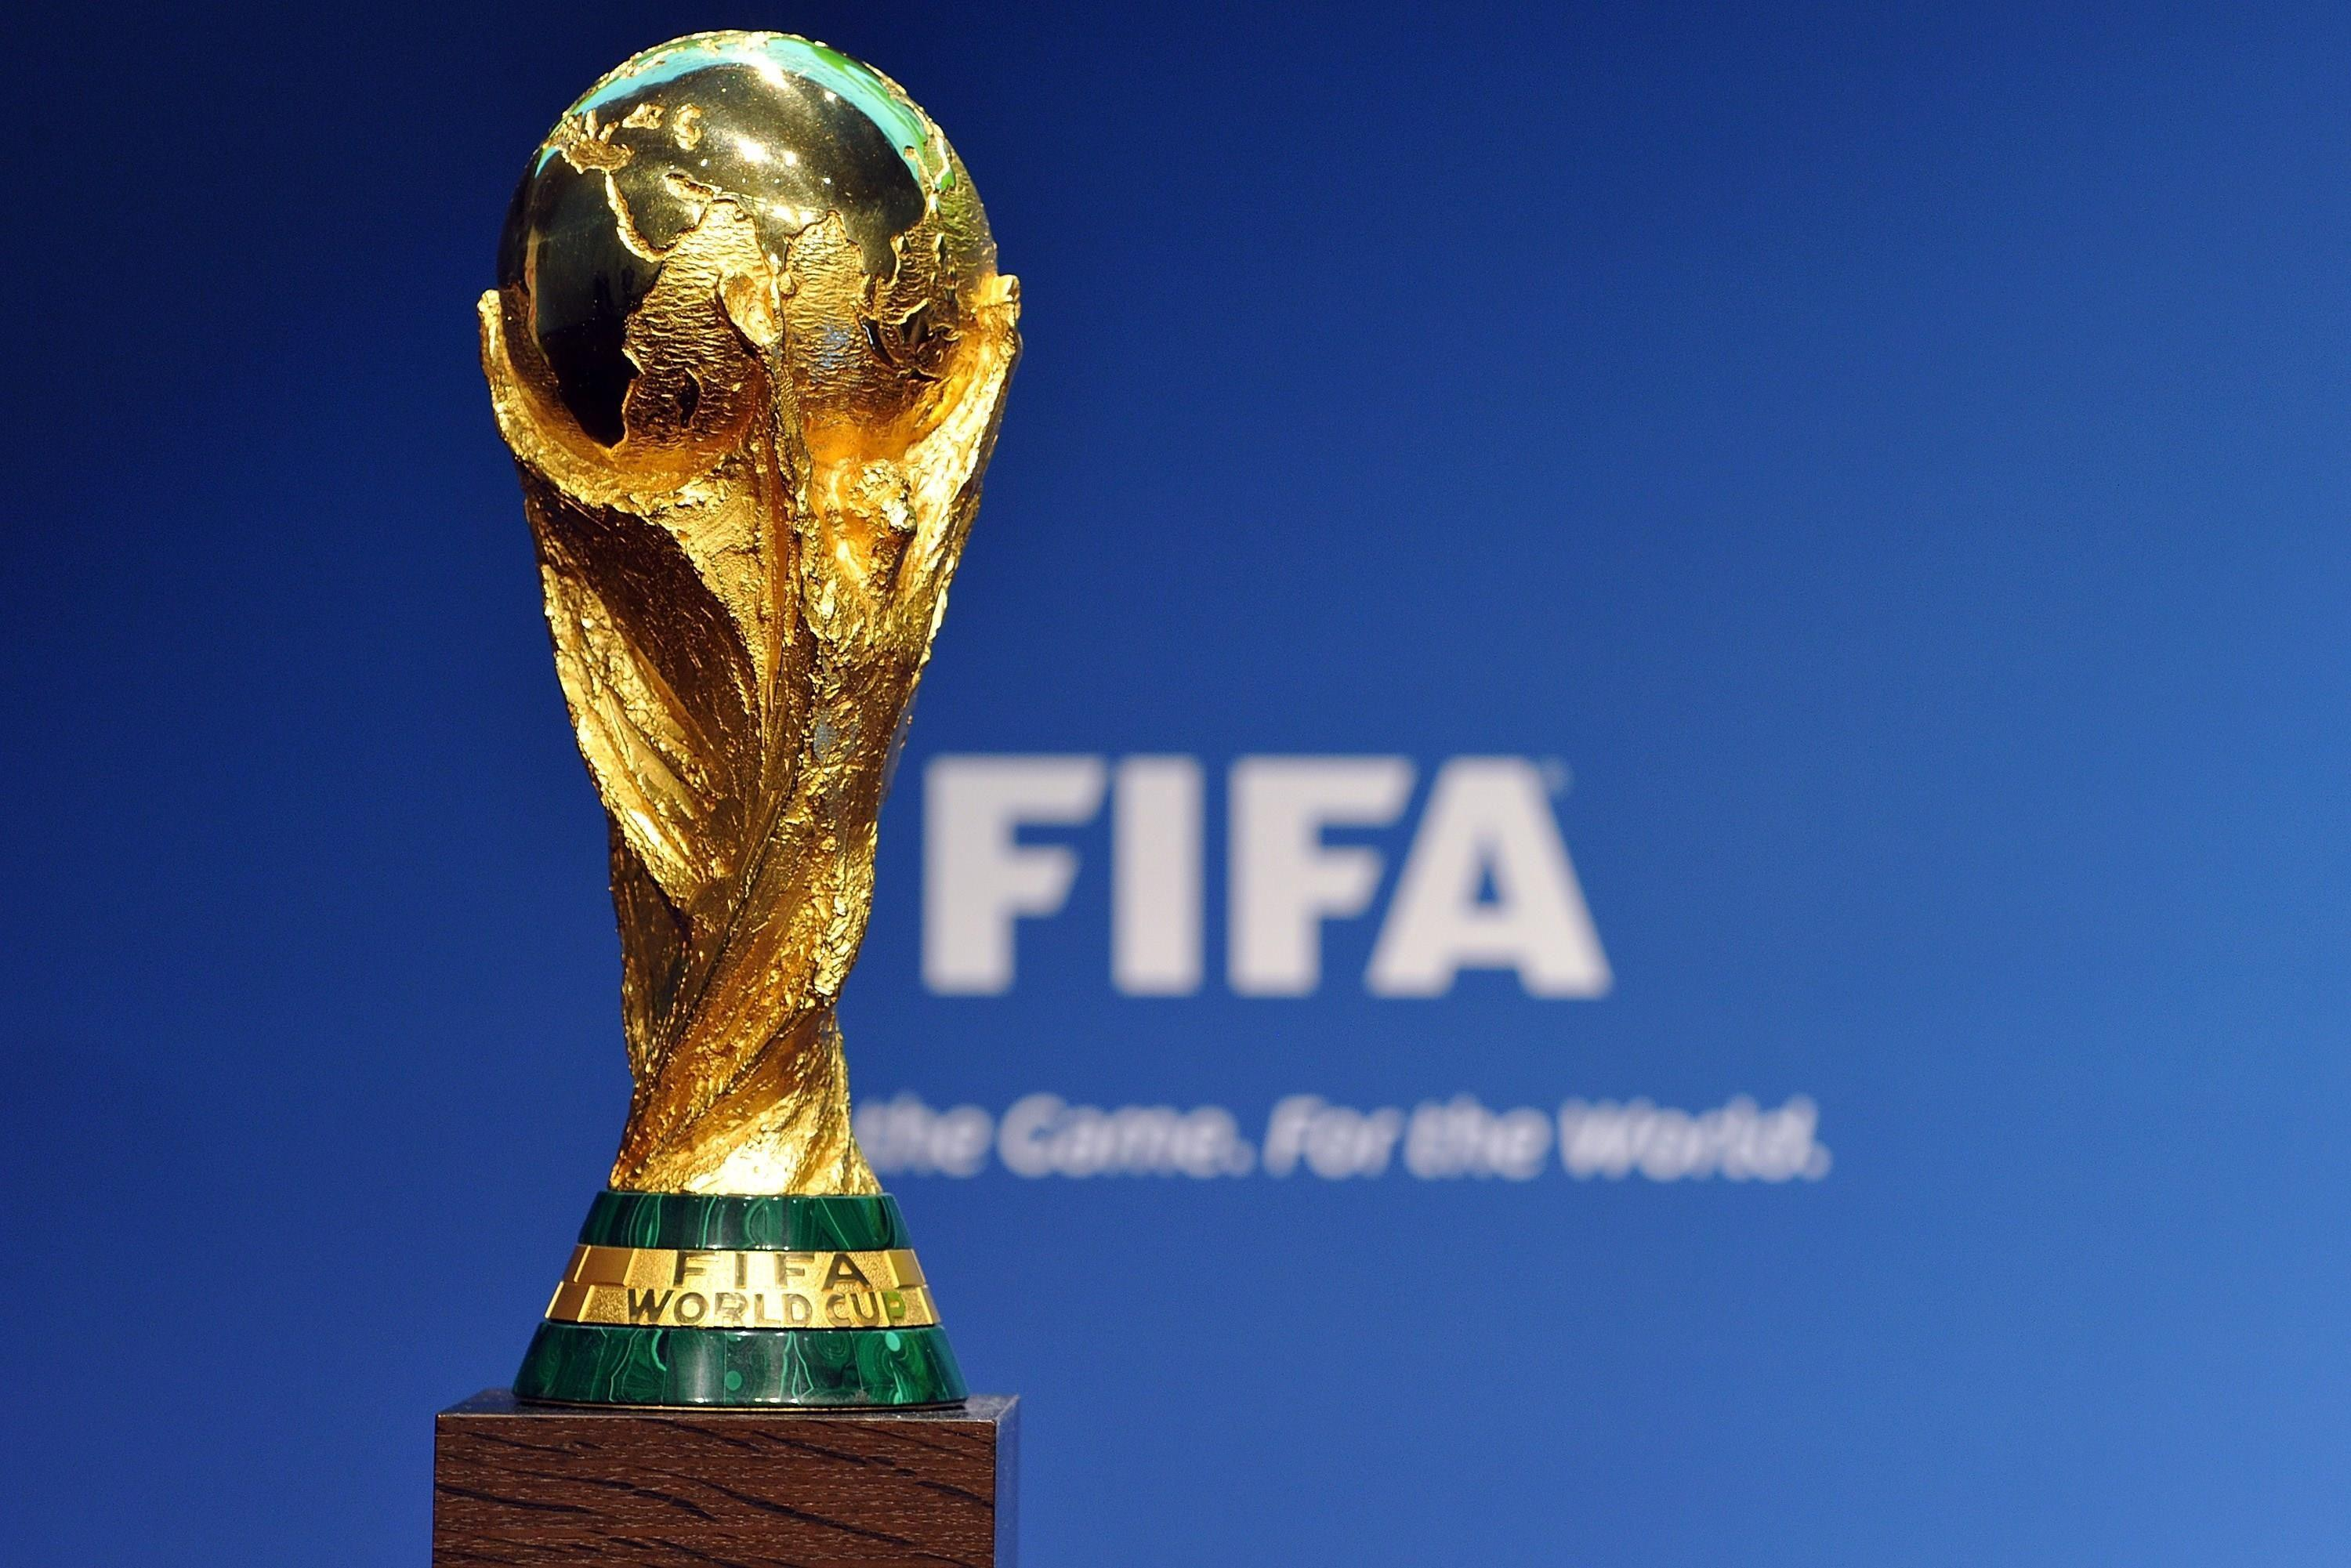 FIFA World Cup Background 8